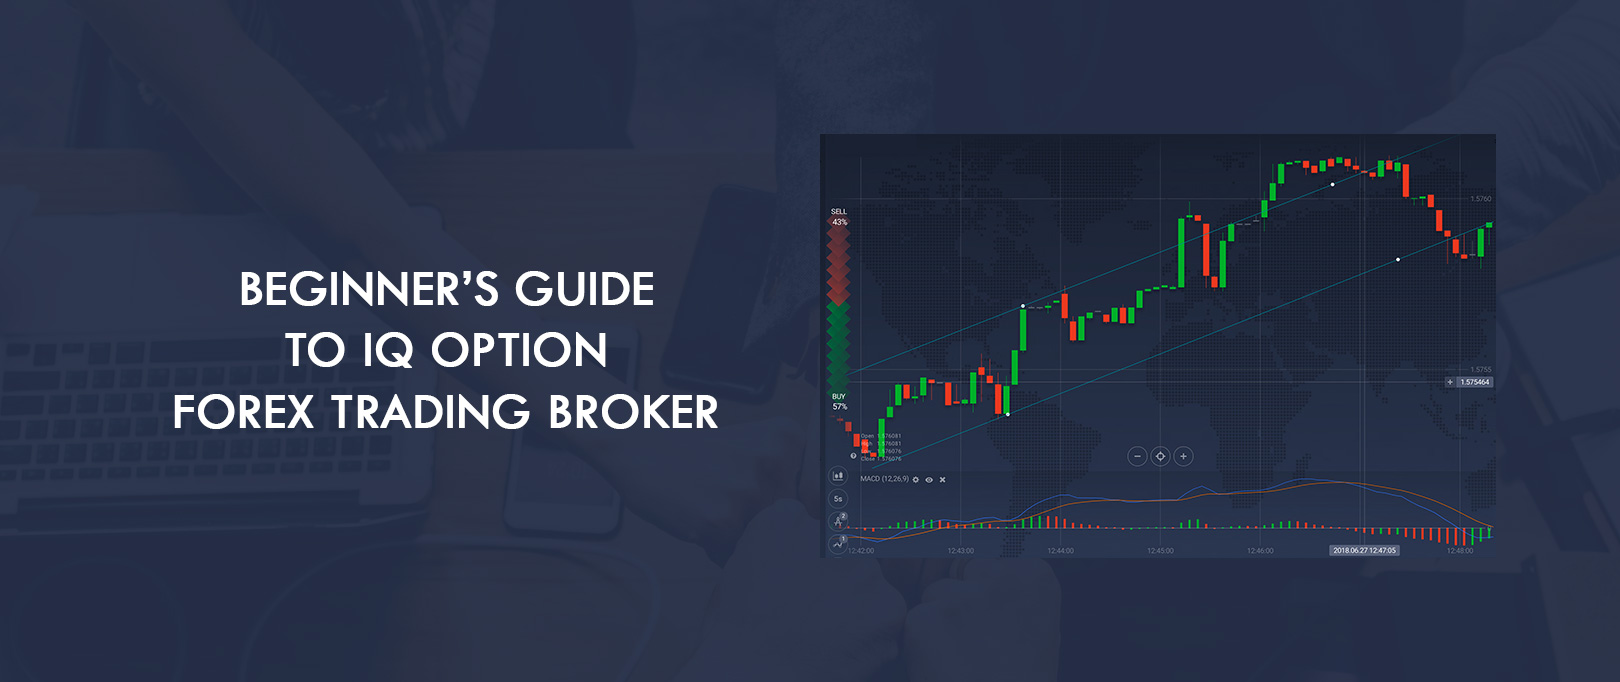 Beginner's-Guide-to-IQ-Option-Forex-Trading-Broker